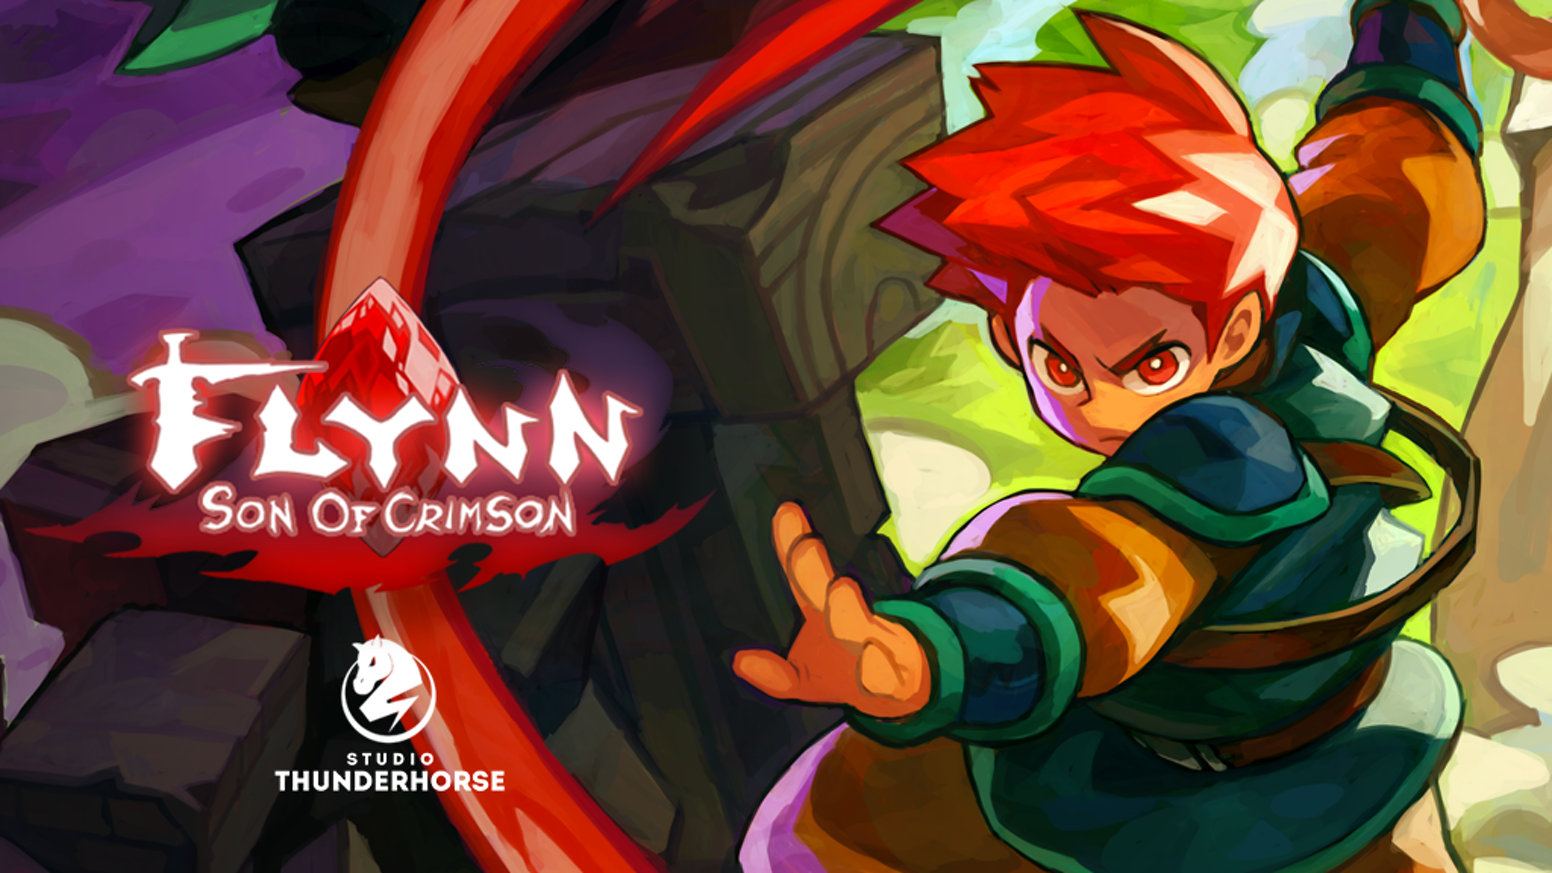 Using the ancient gift of Crimson, take on the role of Flynn to halt the Scourge on the land. A beautifully crafted pixel adventure.